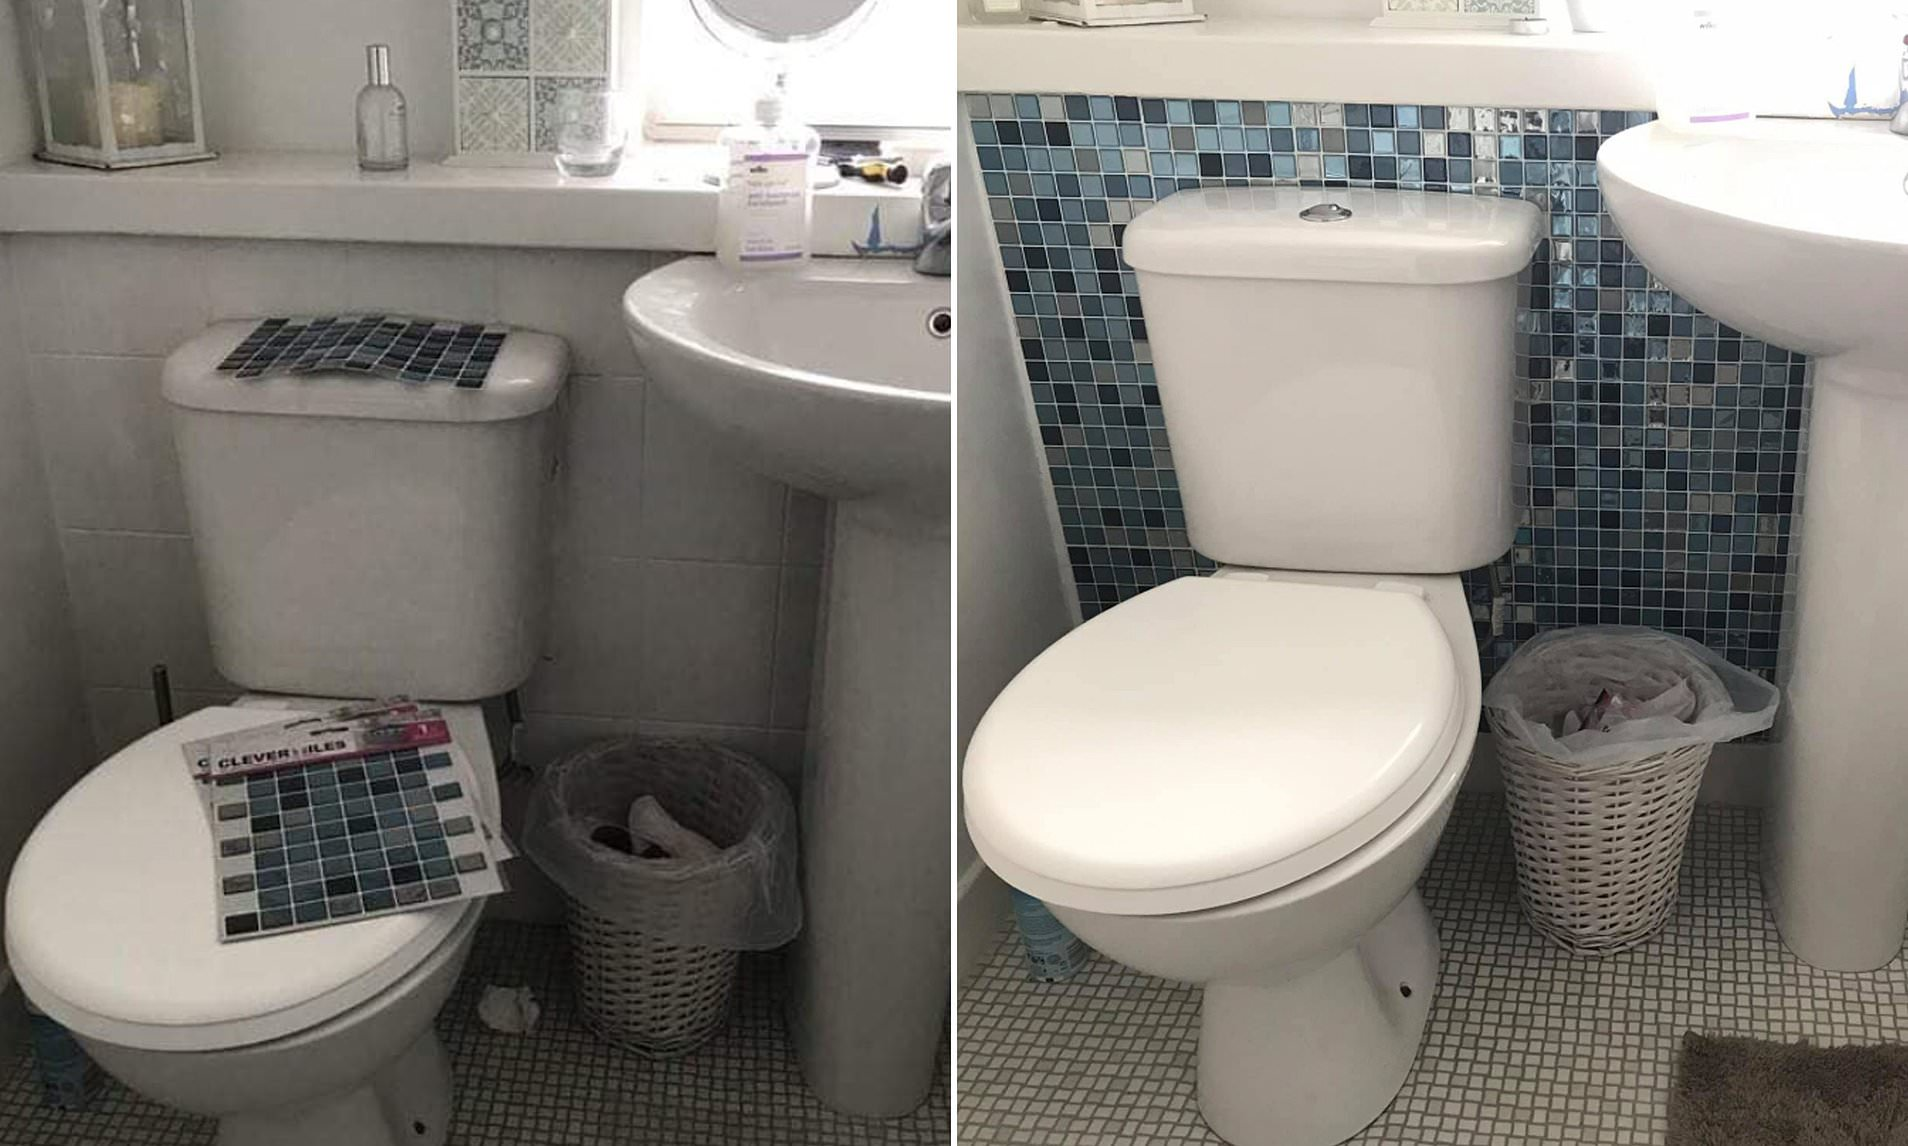 Thrifty Woman Gives Bland Bathroom A Stunning Makeover For Just 15 Using Stick On Floor Tiles Daily Mail Online